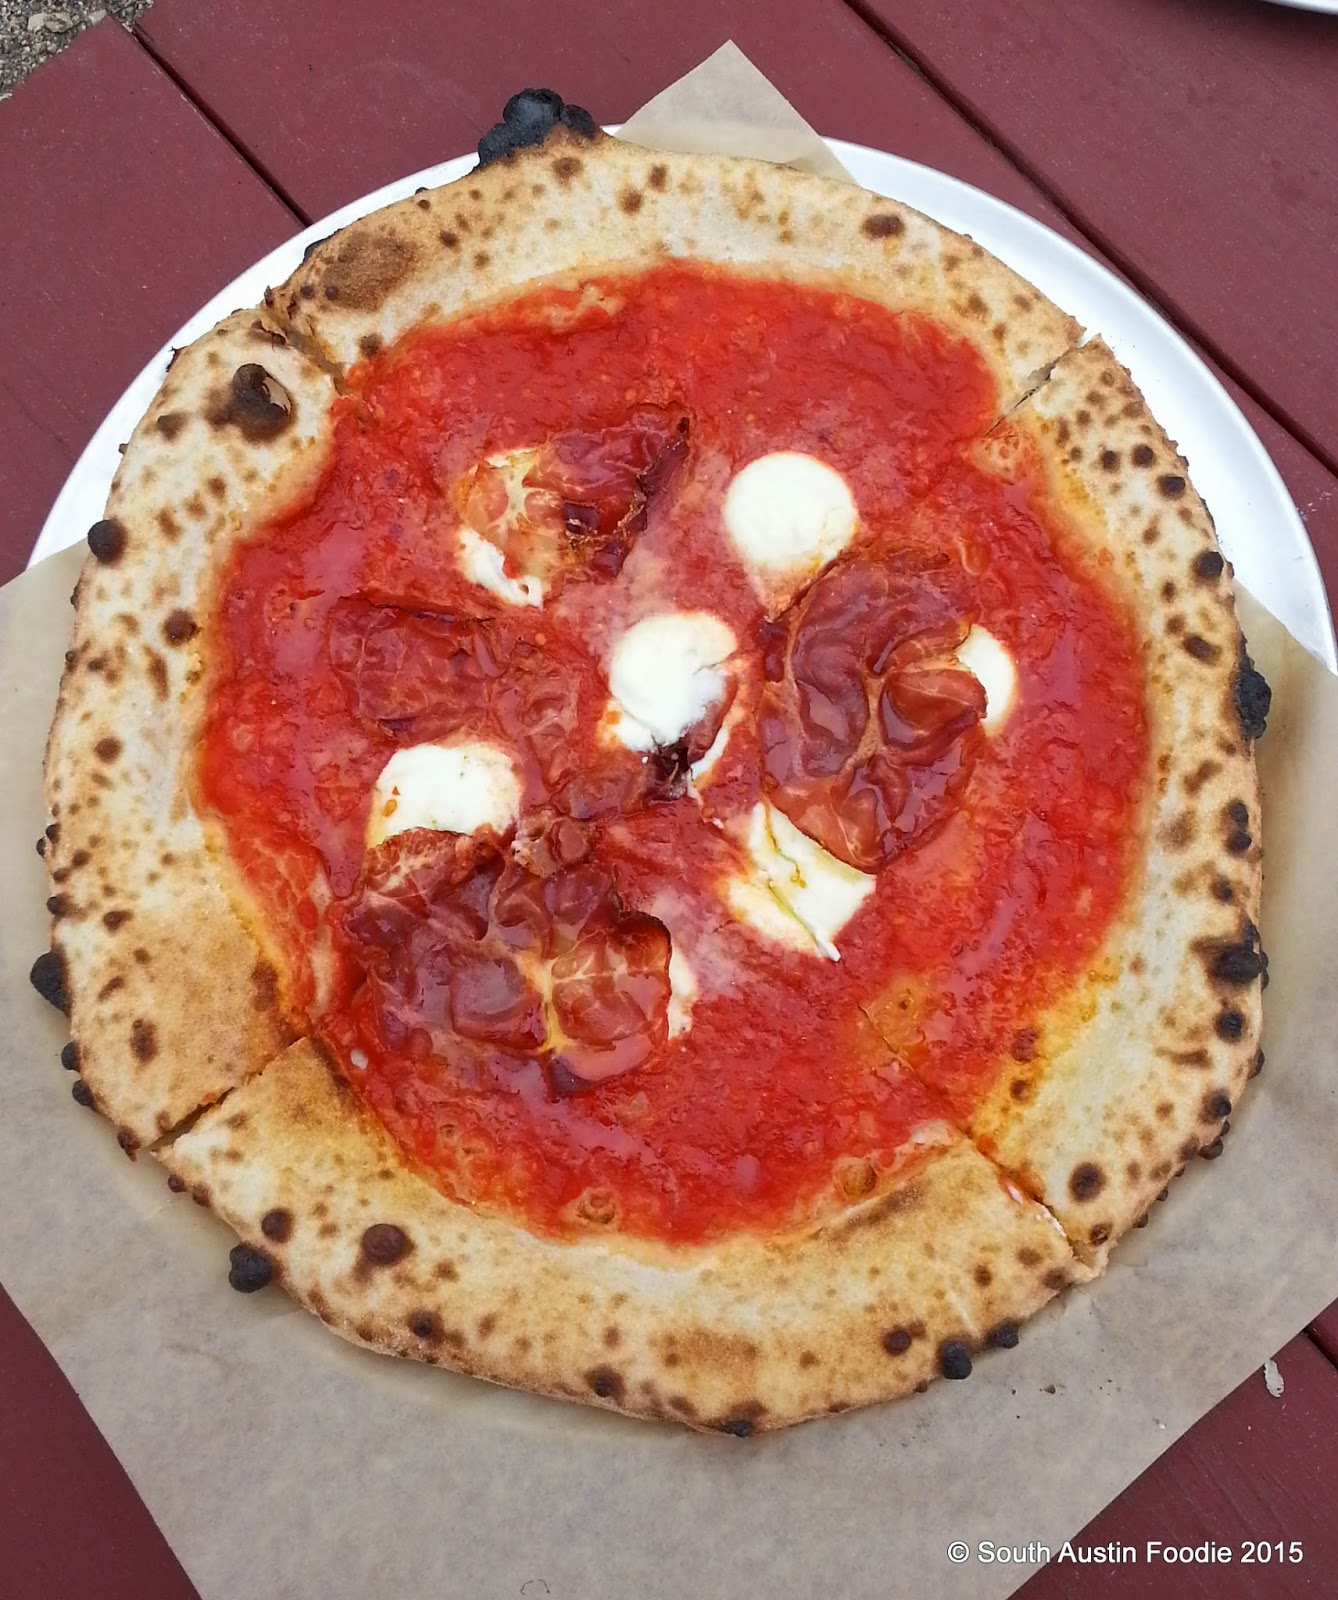 Neapolitan pizza (hot coppa + honey) from 40 North food trailer